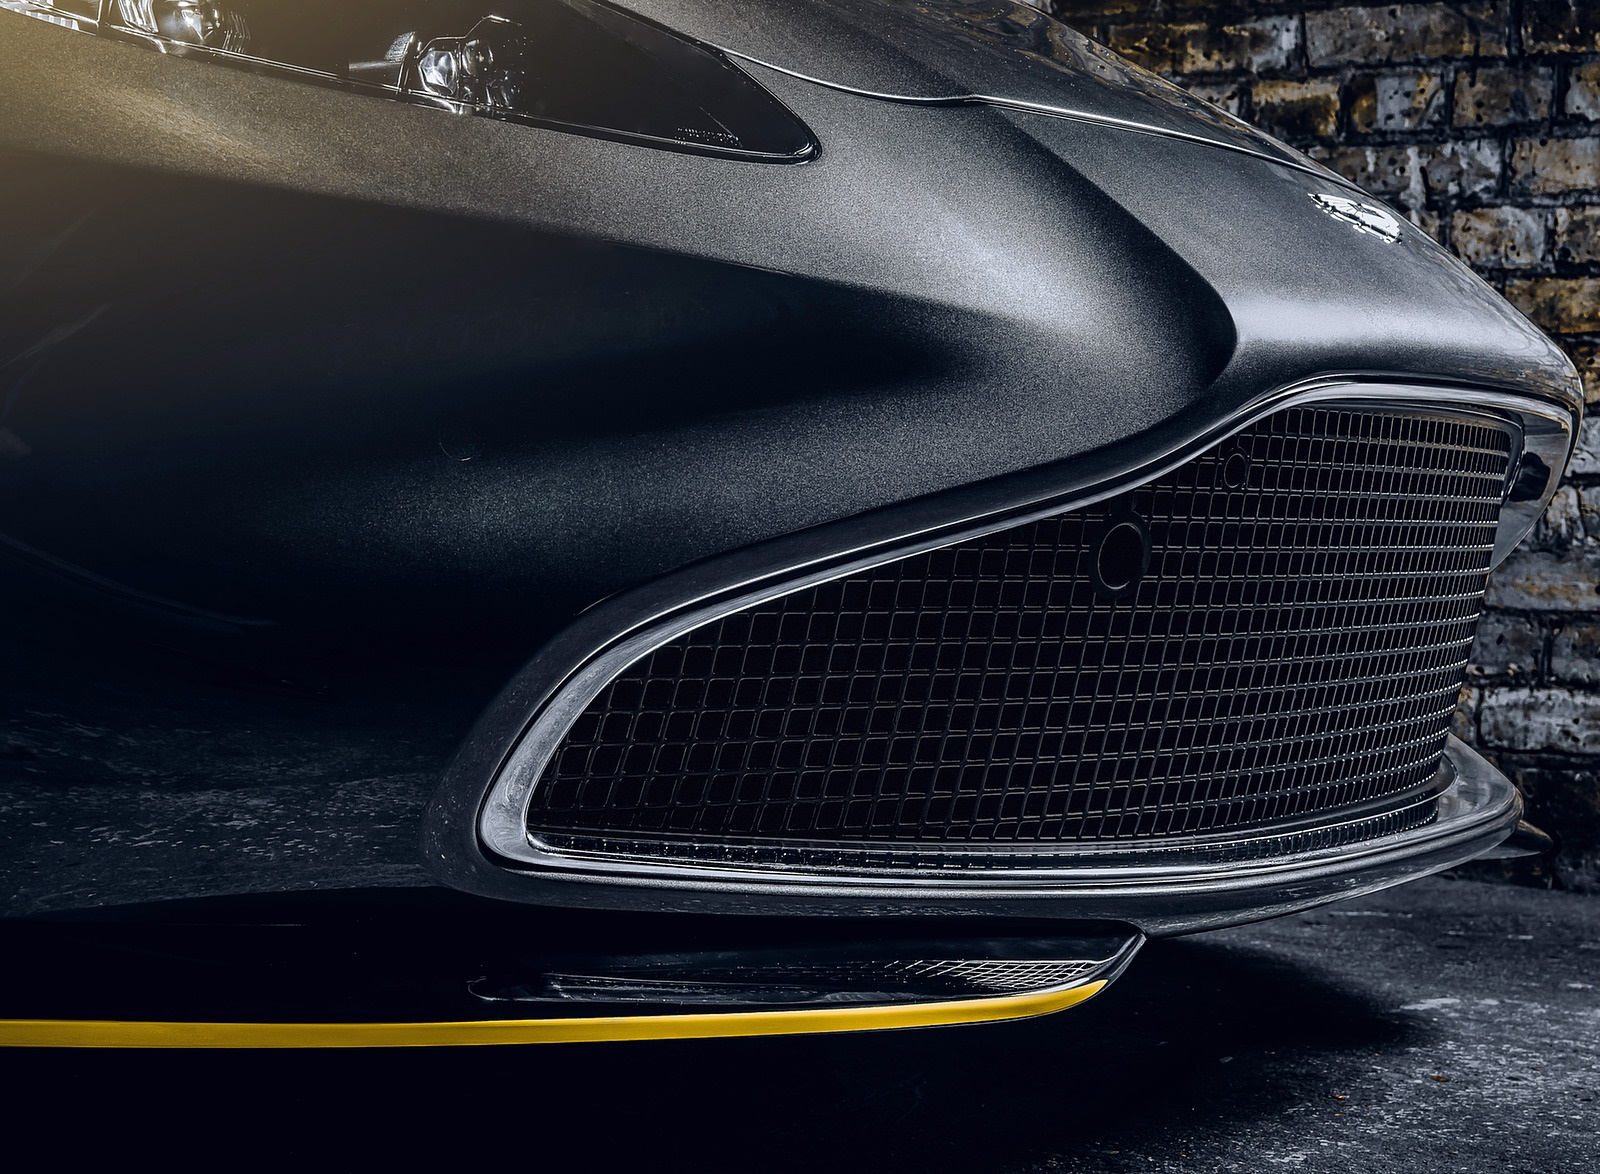 2021 Aston Martin Vantage 007 Edition Detail Wallpapers (9)